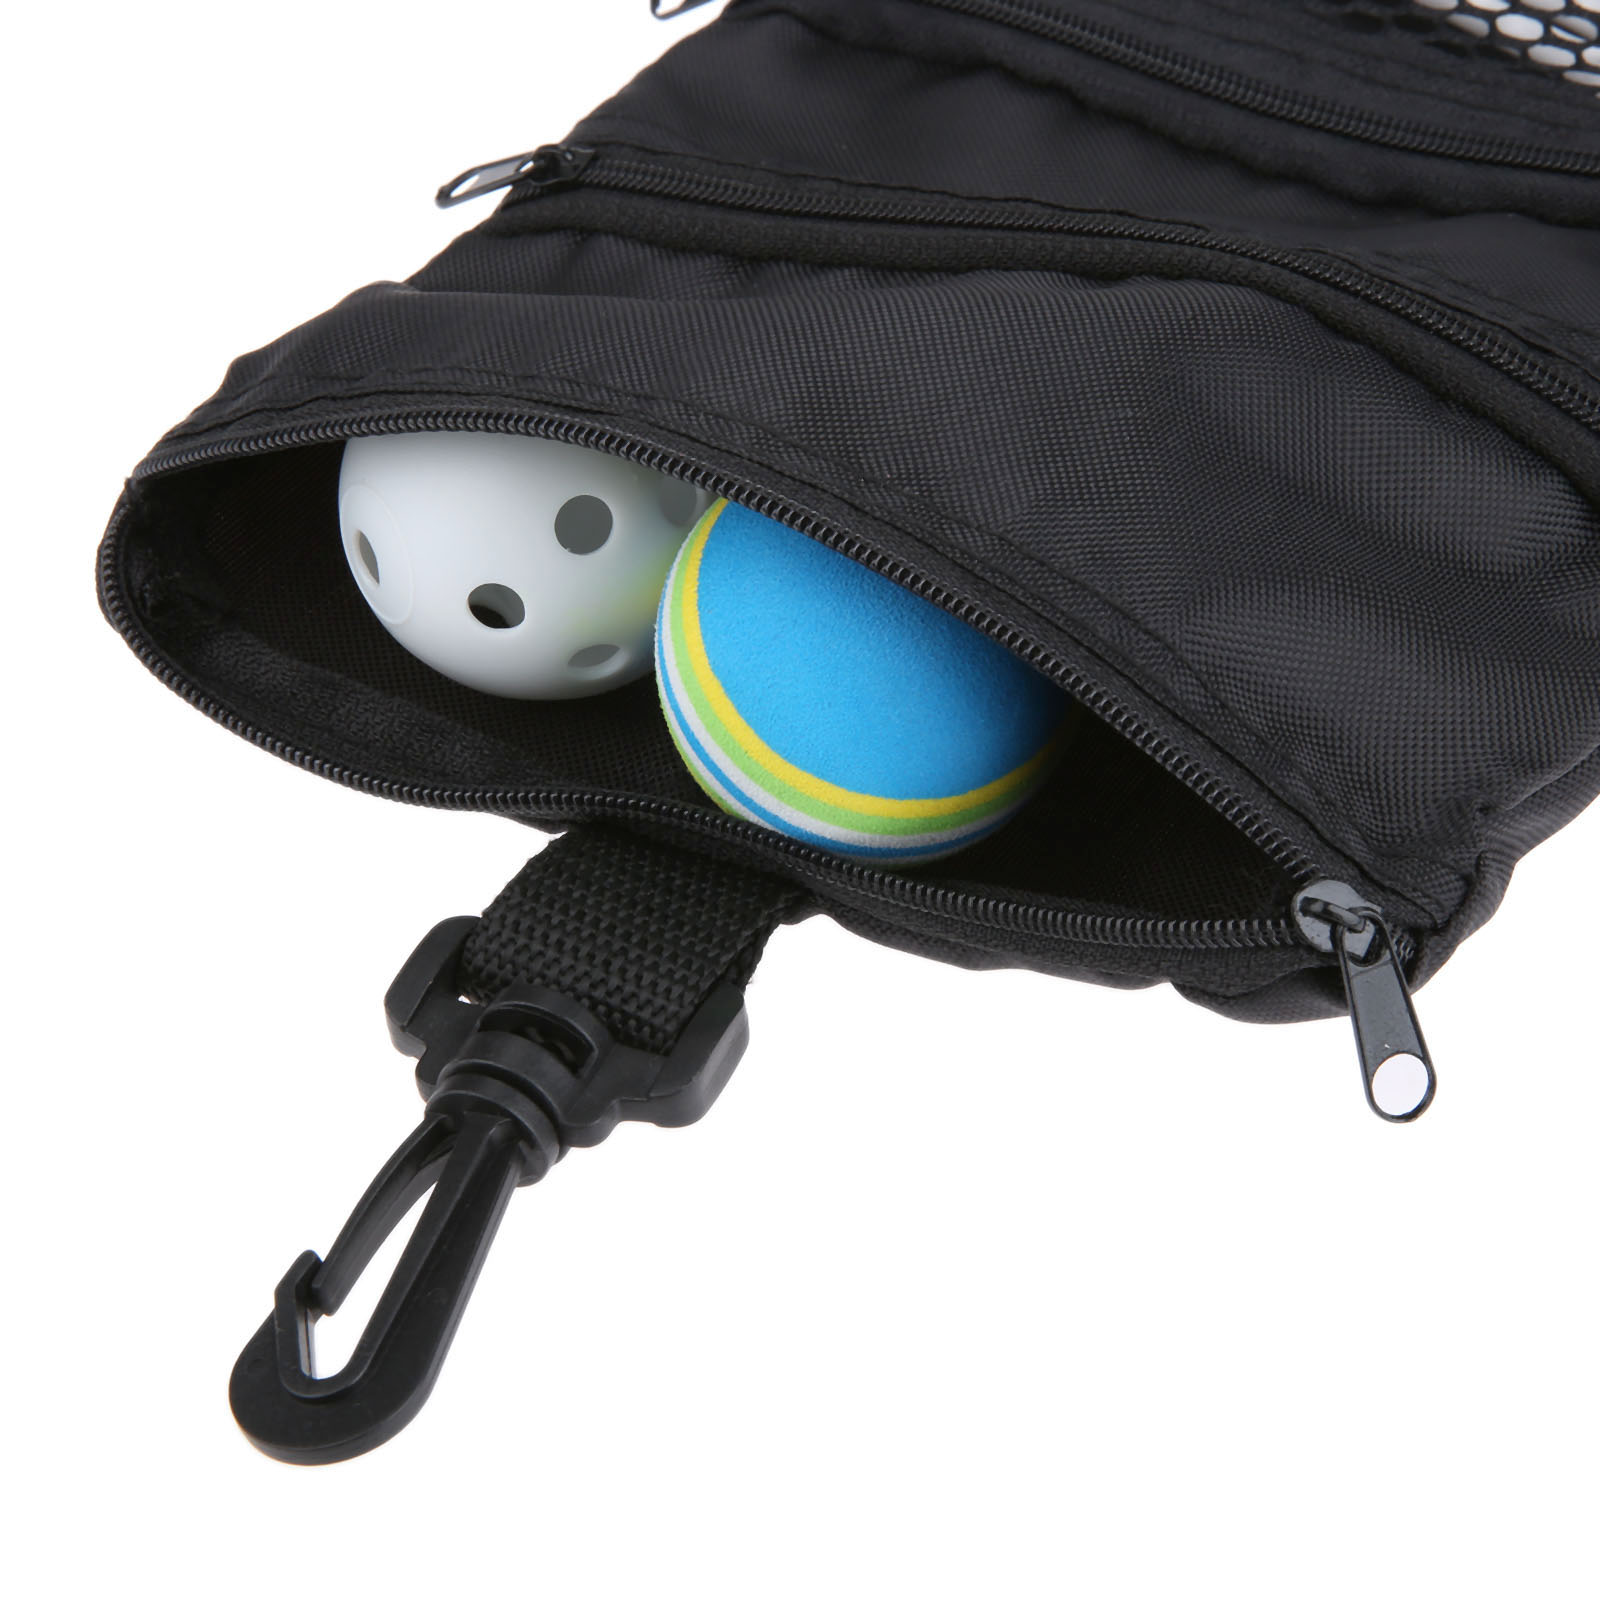 63e172a63842 SURIEEN Black Mini Portable Golf Ball Bag Golf Tees Holder Multi-Pocket  Zipper Mesh Pouch Storage Handbag Bag Golf Training Accessories